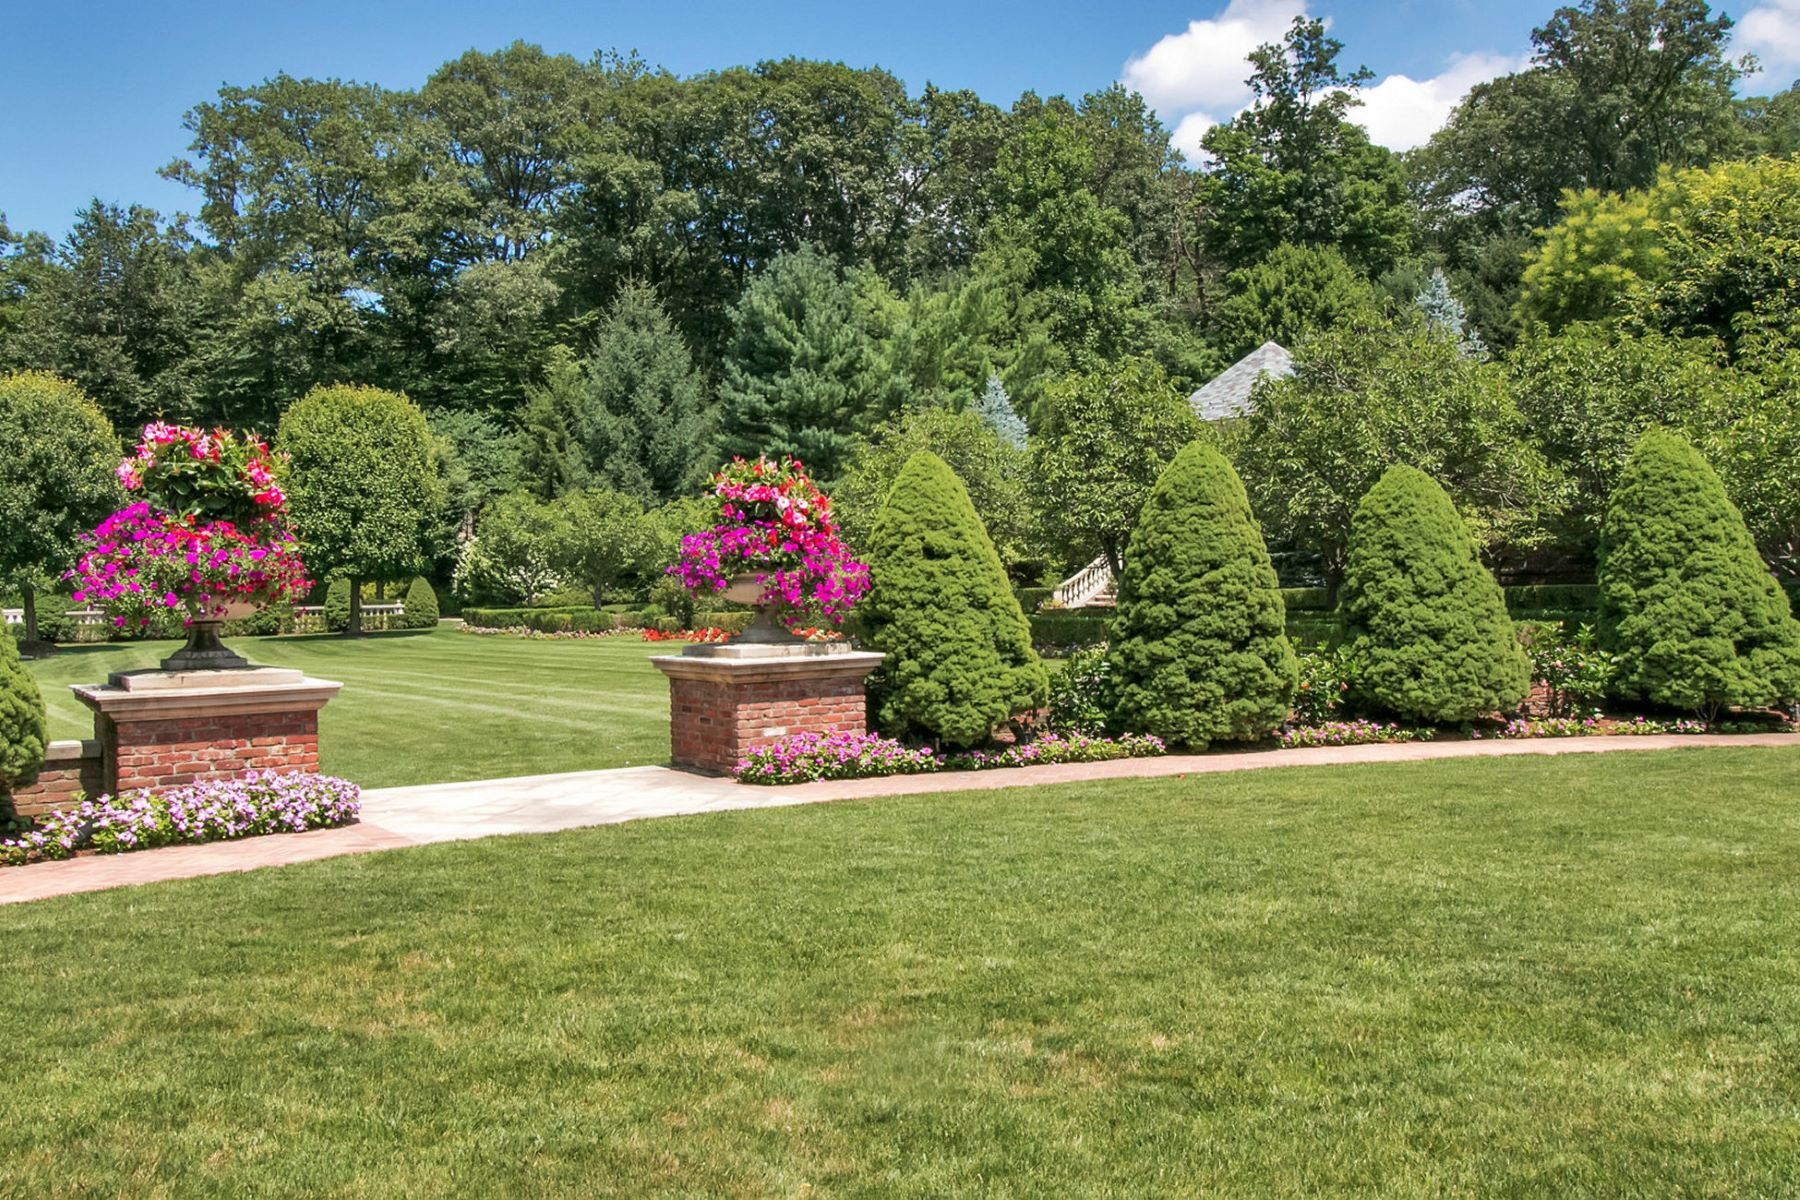 Additional photo for property listing at Timeless Grandeur 887 Closter Dock Road Alpine, Nueva Jersey 07620 Estados Unidos